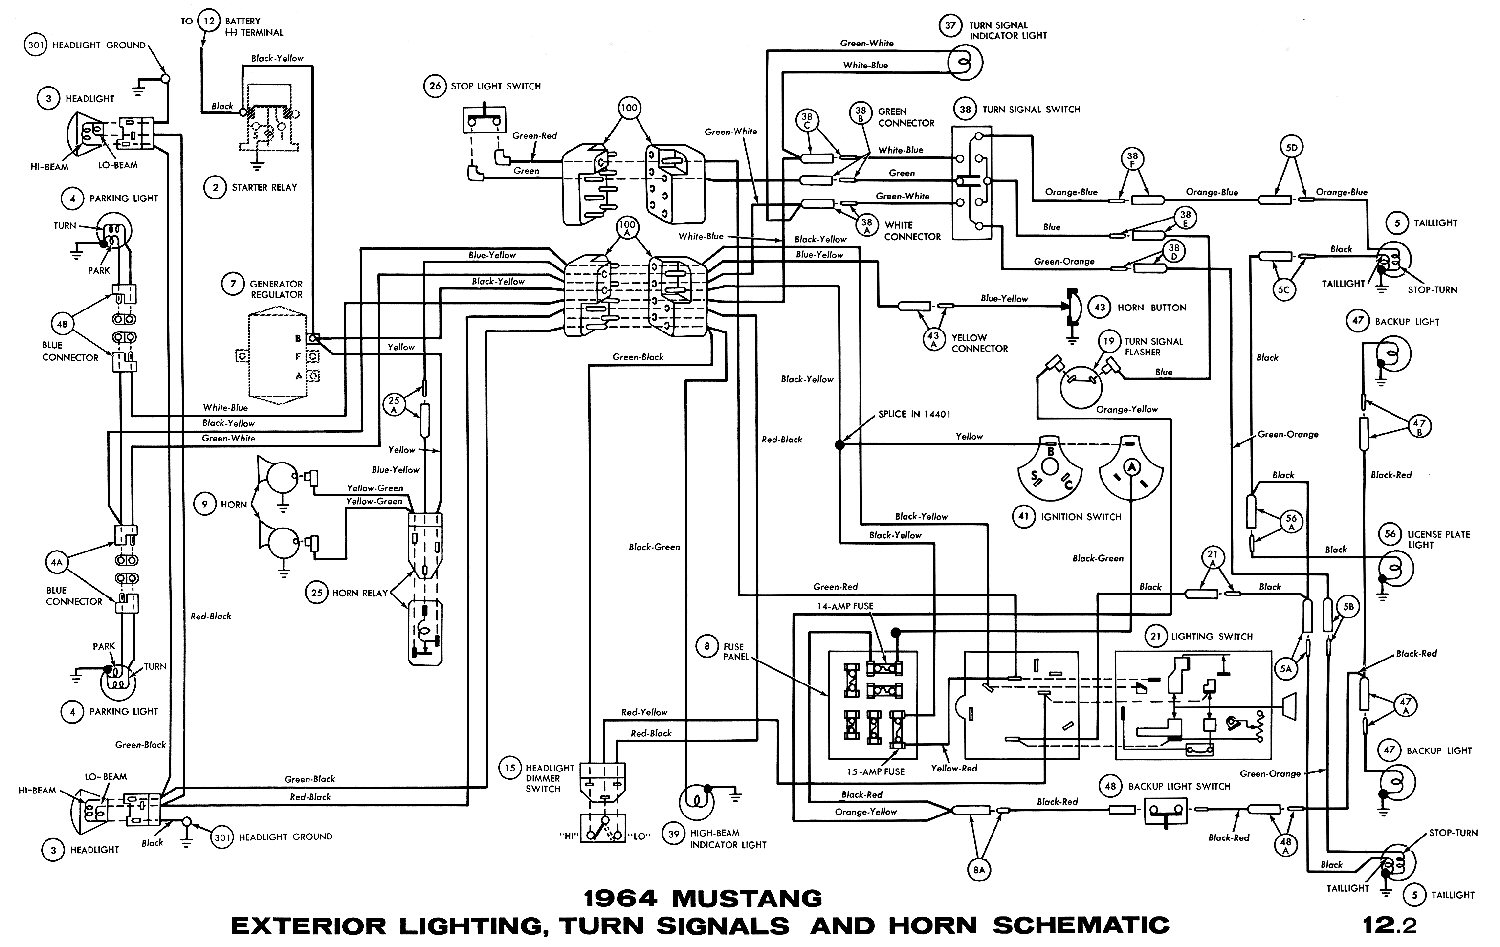 1964 Mustang Wiring Diagrams - Average Joe Restoration on 1970 ford ignition coil, 1970 ford charging system diagram, 1970 ford ignition system,